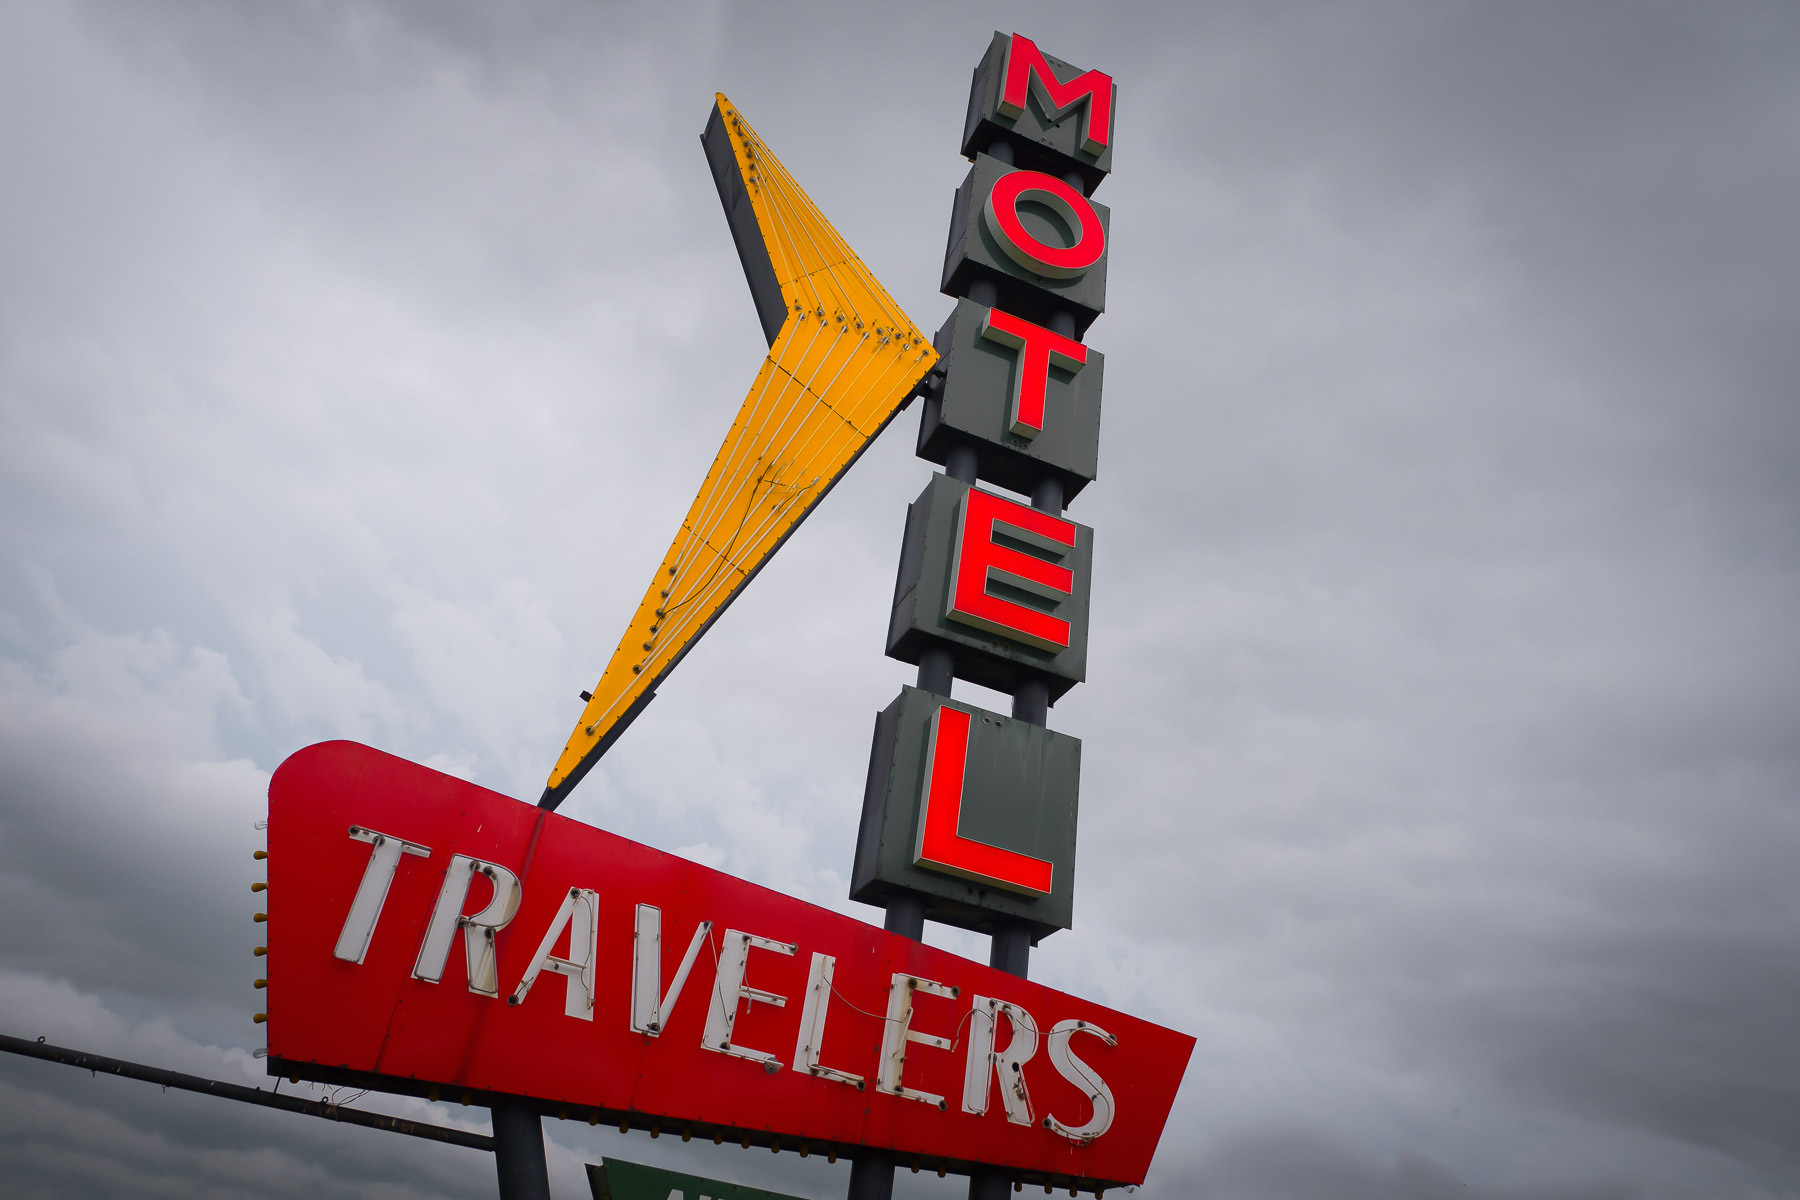 The Travelers Motel sign rises into the overcast sky over Bartlesville, Oklahoma.